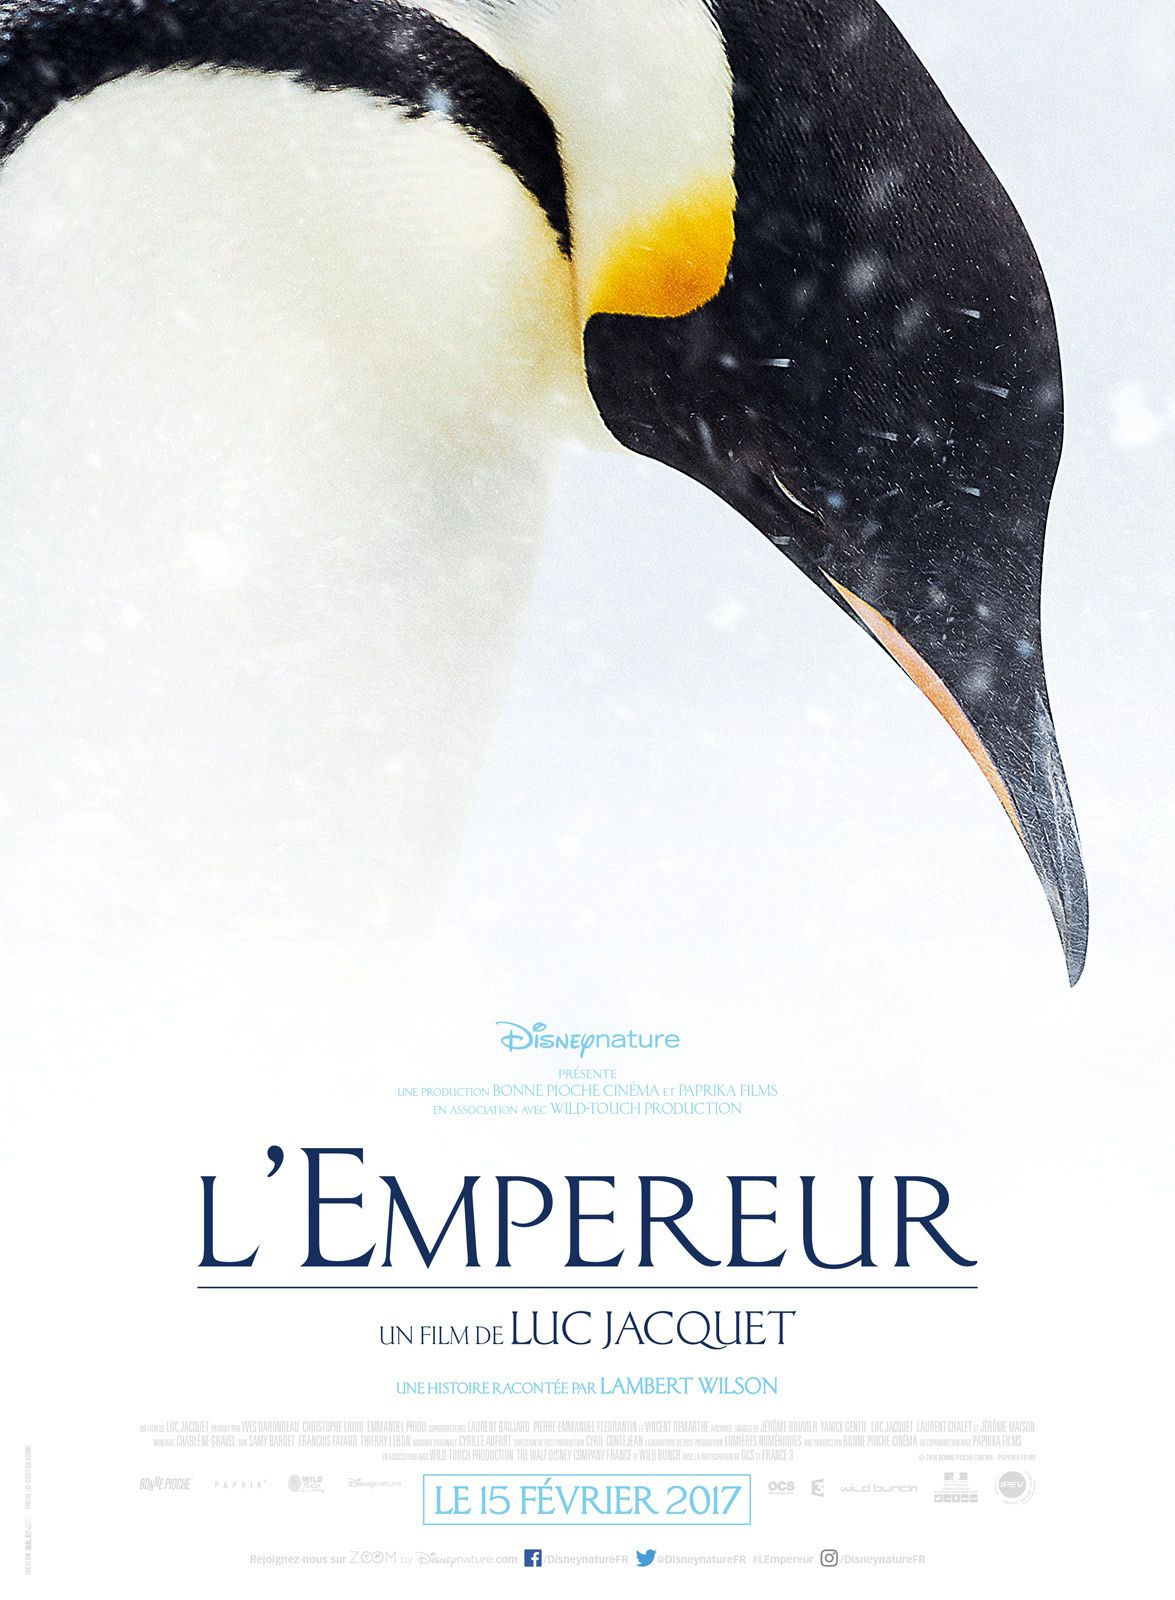 L'Empereur - Documentaire (2017) streaming VF gratuit complet